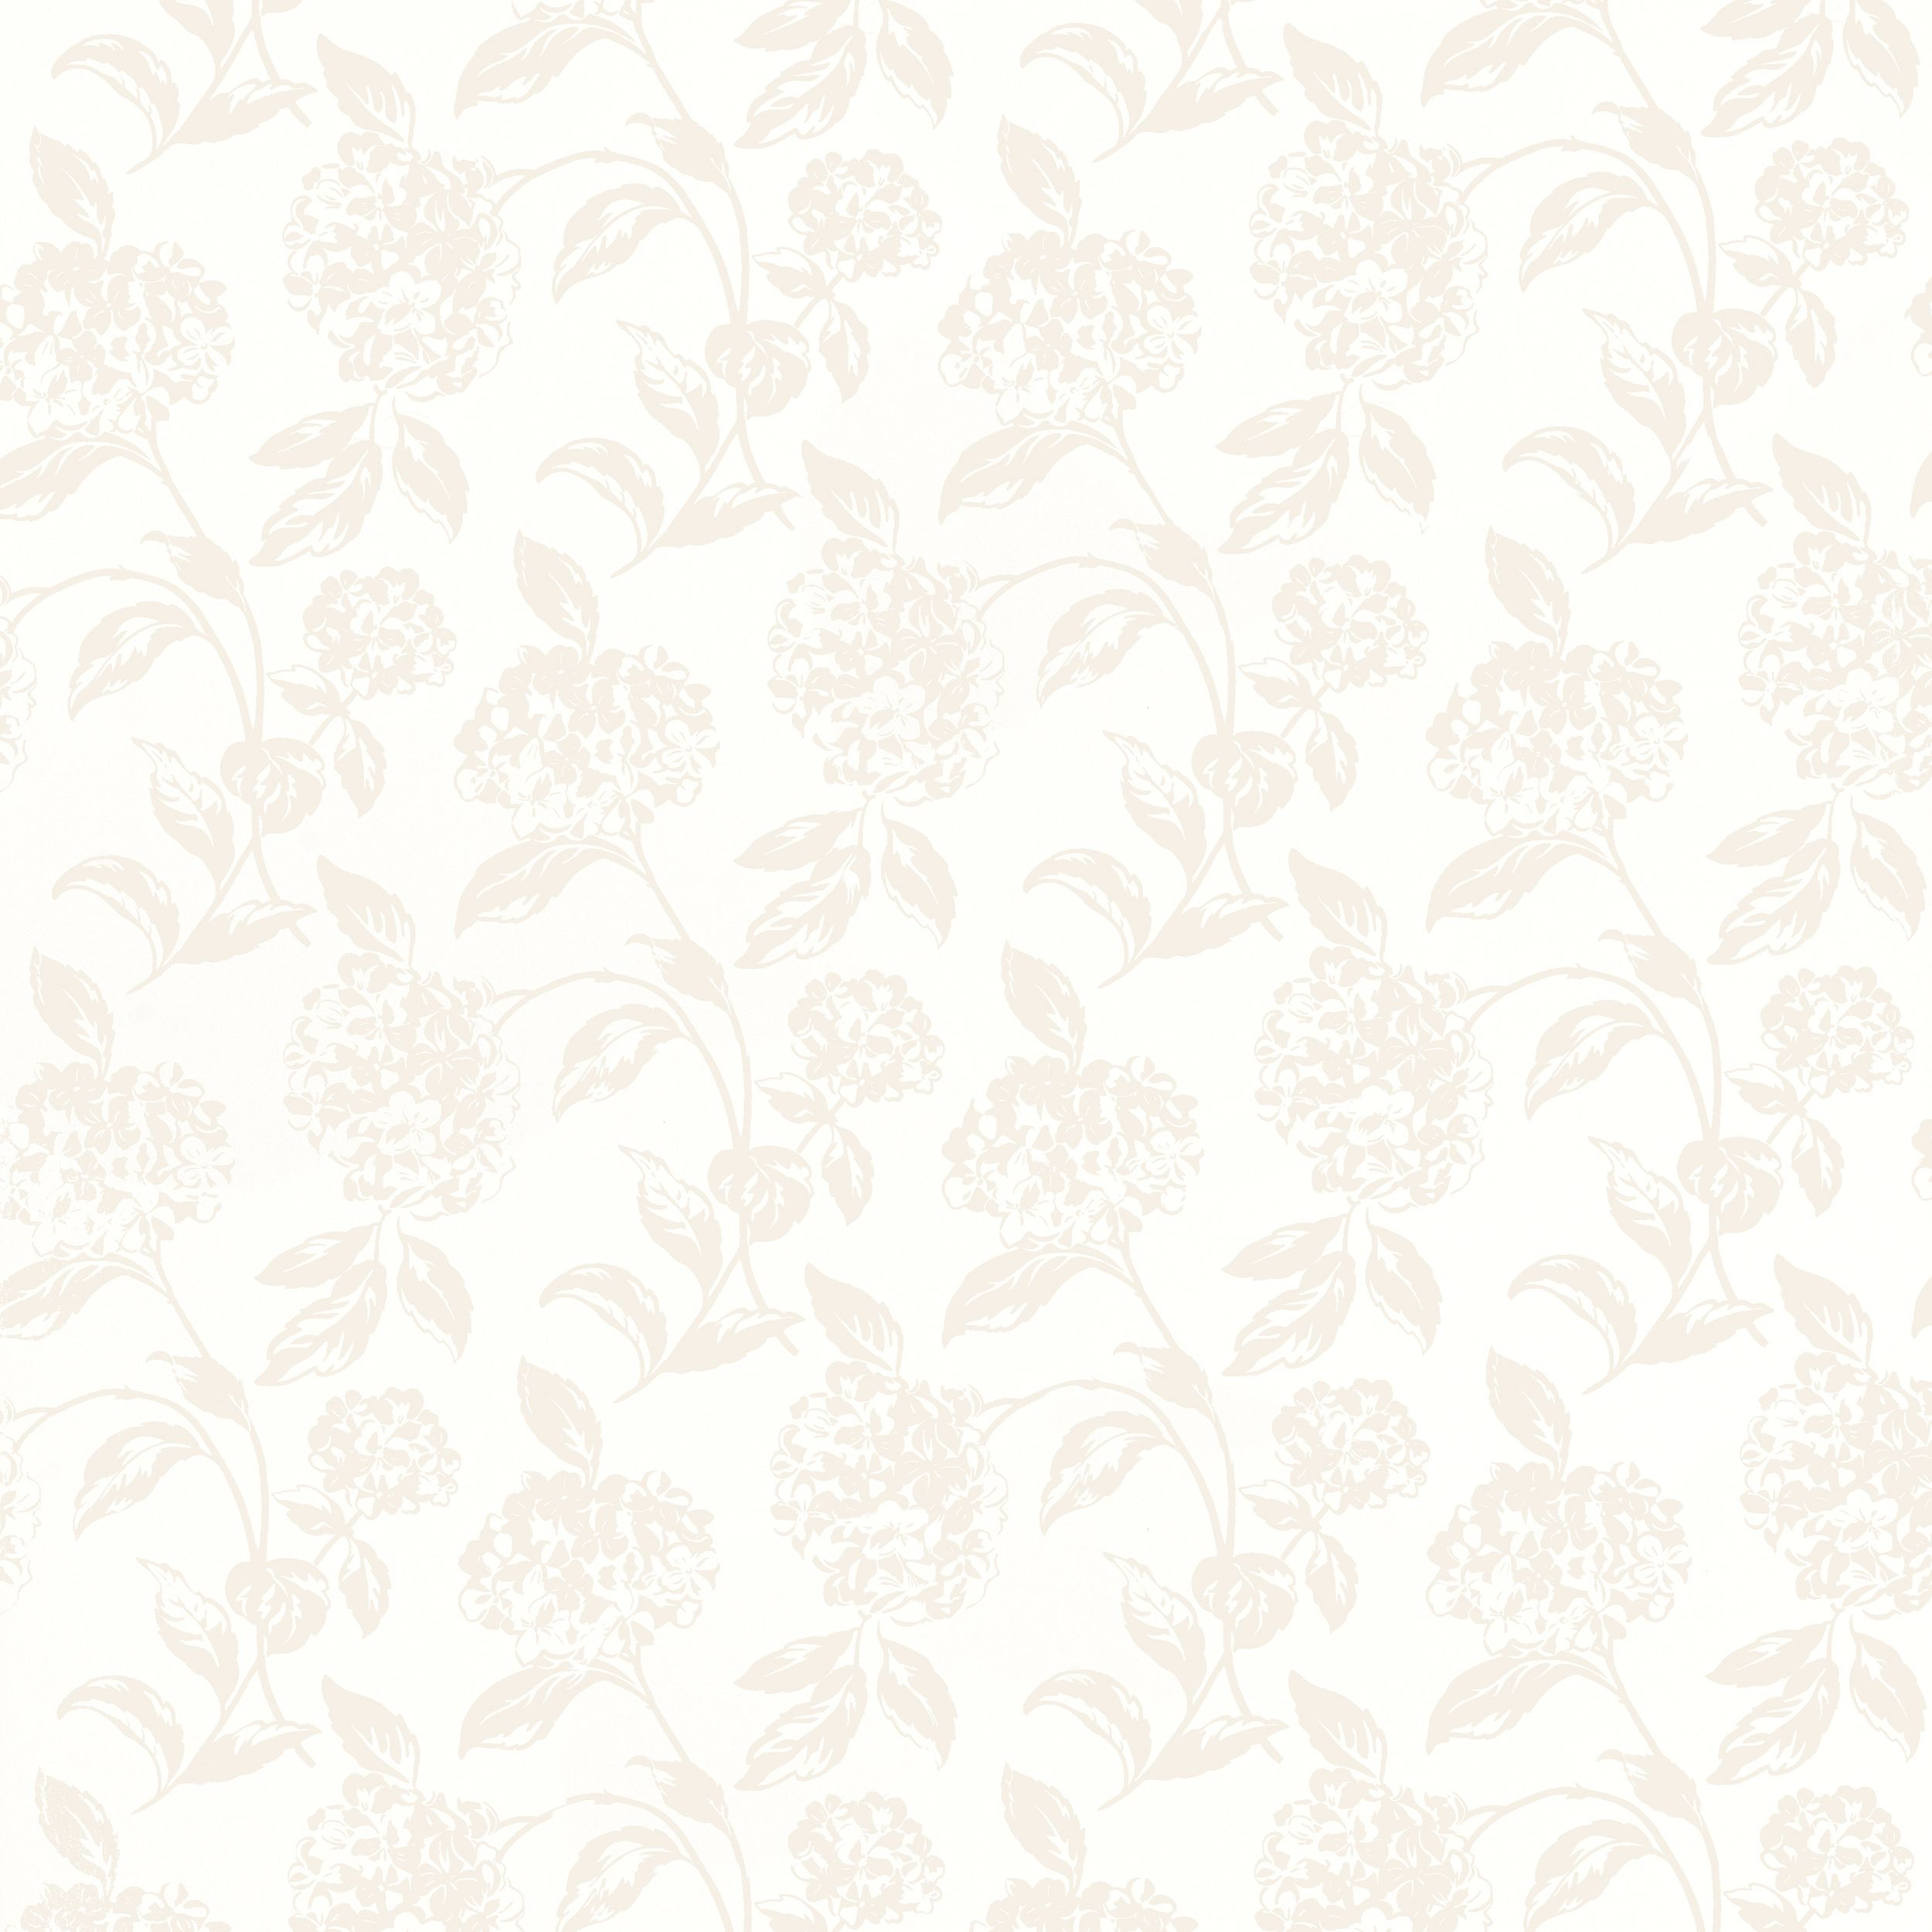 Hesta White Floral Wallpaper At LAURA ASHLEY Tapetinspiration